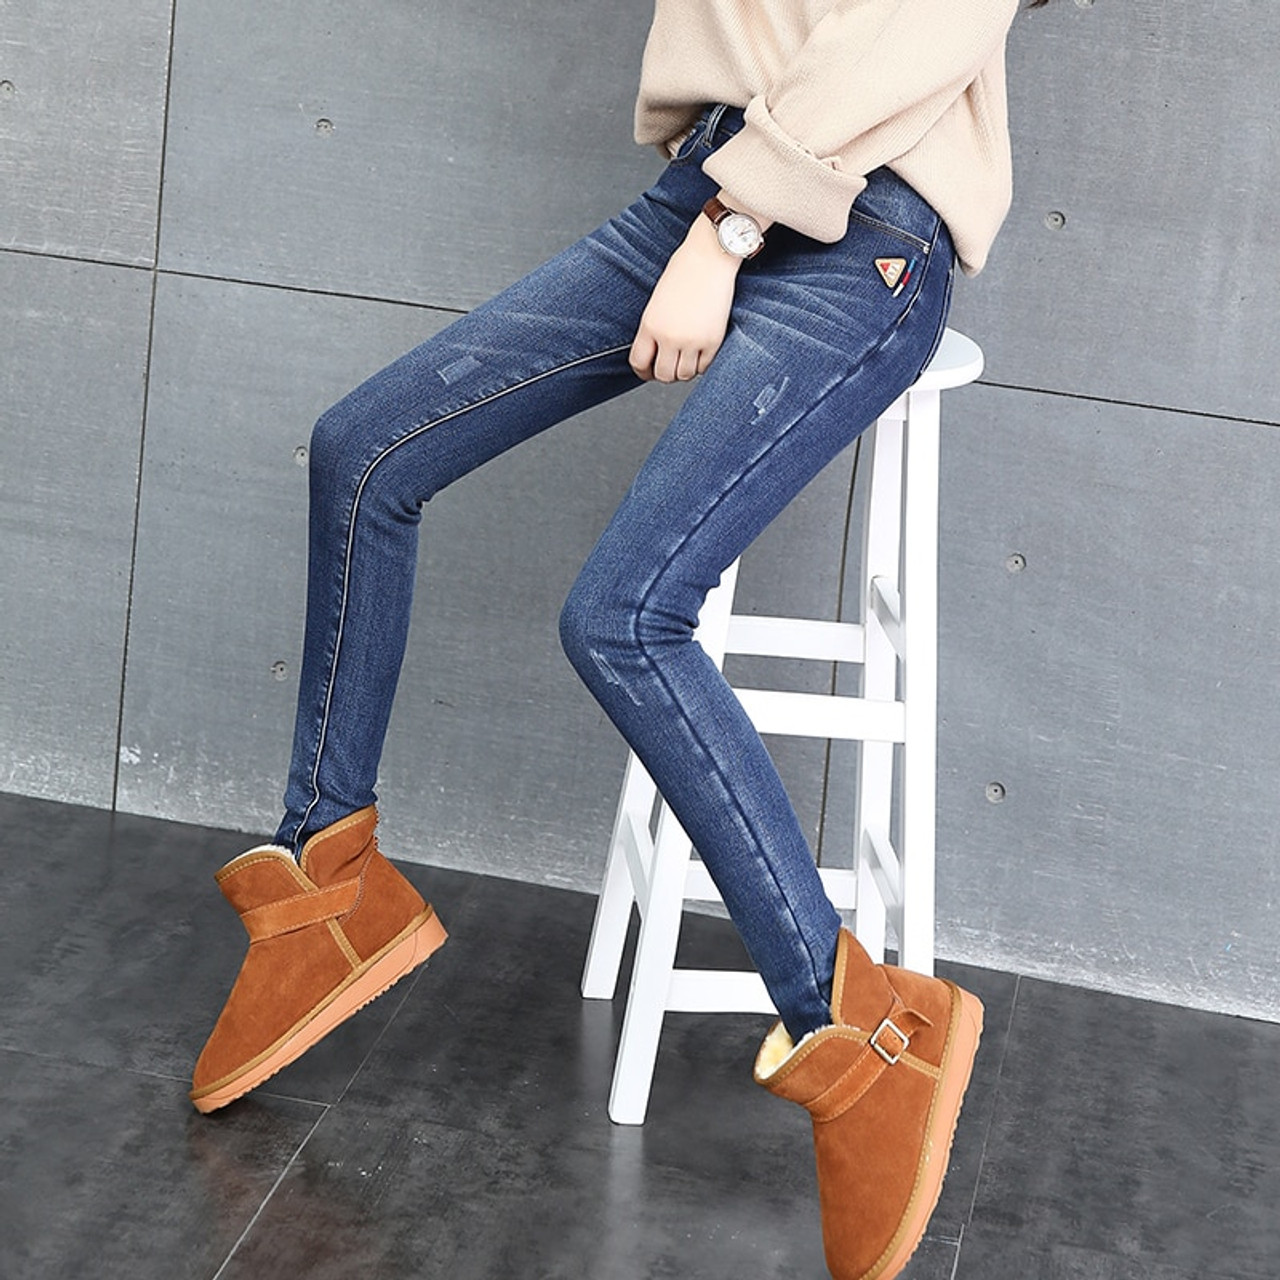 7a4e09ac280 CTRLCITY Winter Jeans Female High Waist Denim Pants Warm Trousers Femme  Slim Thick Stretch Fleece Pencil Pants Skinny Jeans - OnshopDeals.Com